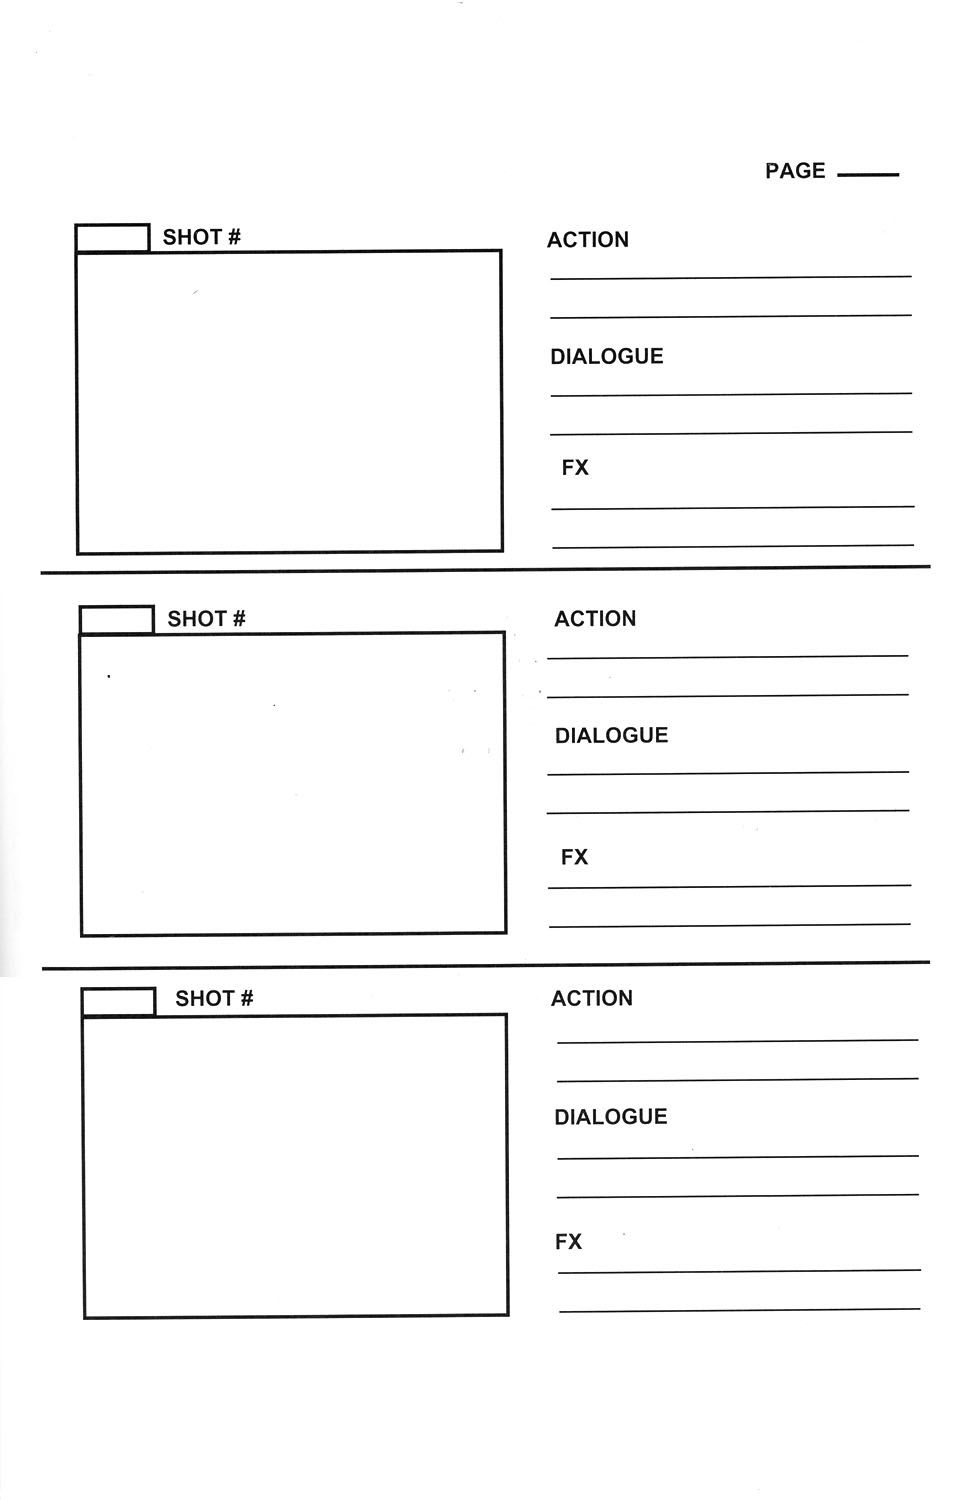 storyboard template storyboard templates to plan your book trailer biz ideas pinterest. Black Bedroom Furniture Sets. Home Design Ideas